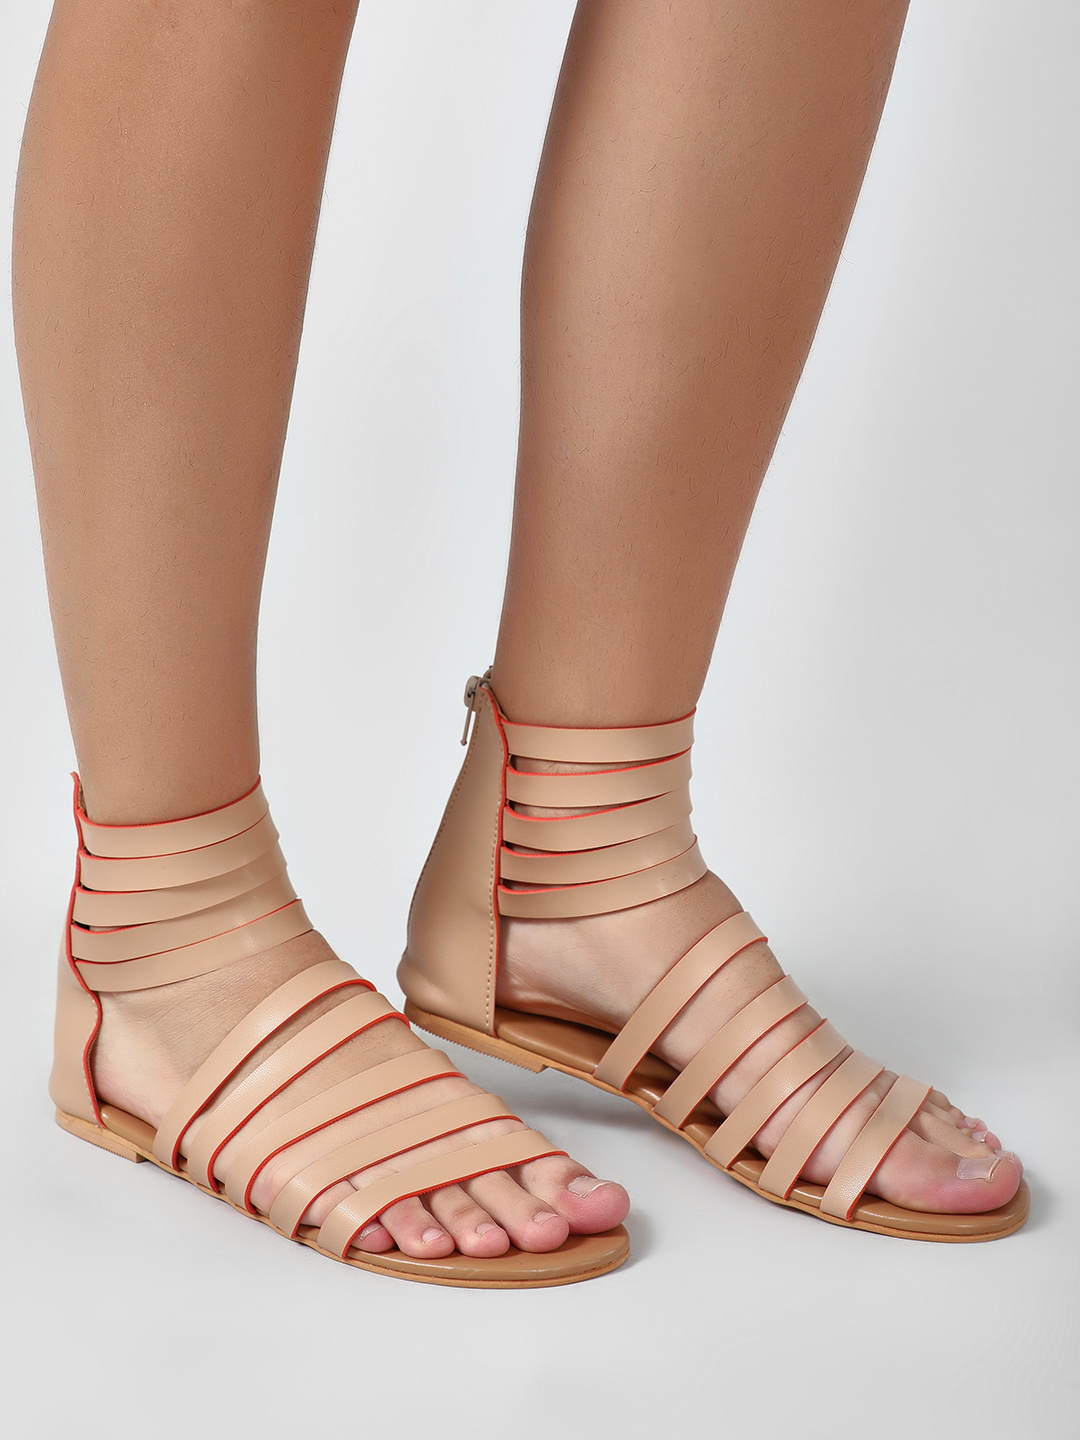 CAi Nude Multi Strap Gladiator Sandals 1